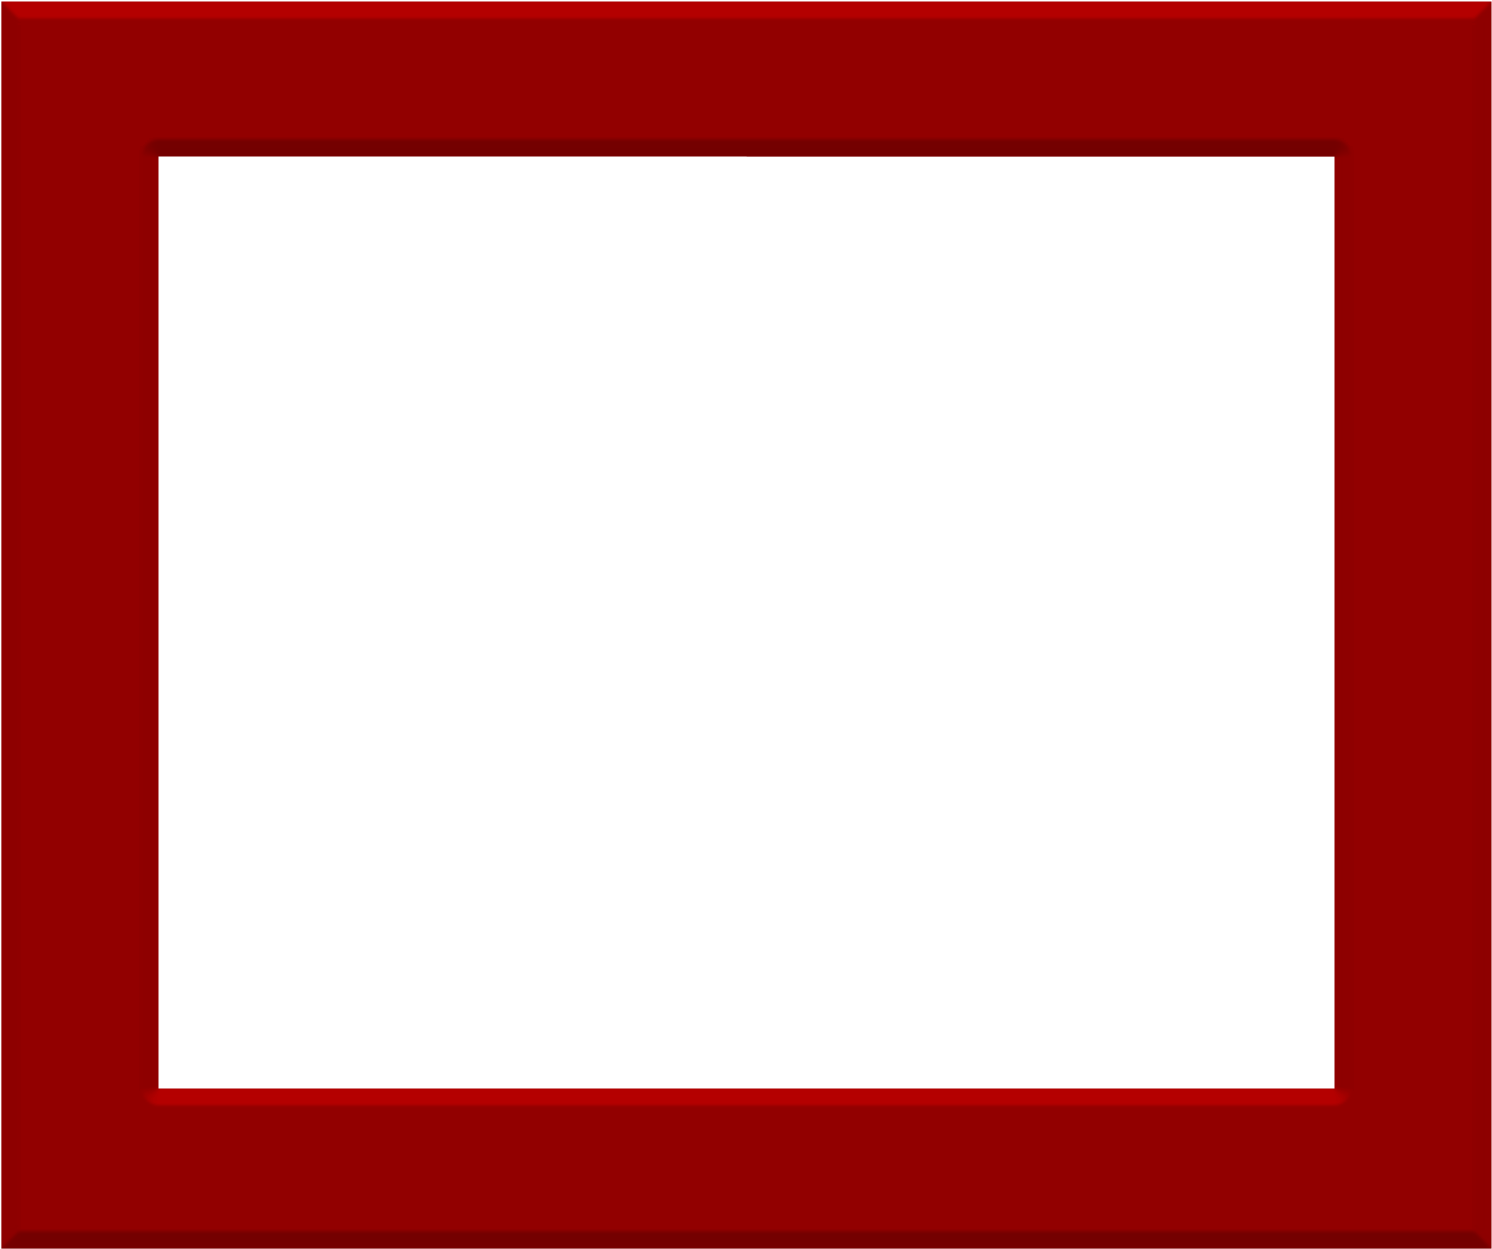 Download Free Png Square Frame Png Images Transparent Red Square Frame Png Full Size Png Image Pngkit All png & cliparts images on nicepng are best quality. download free png square frame png